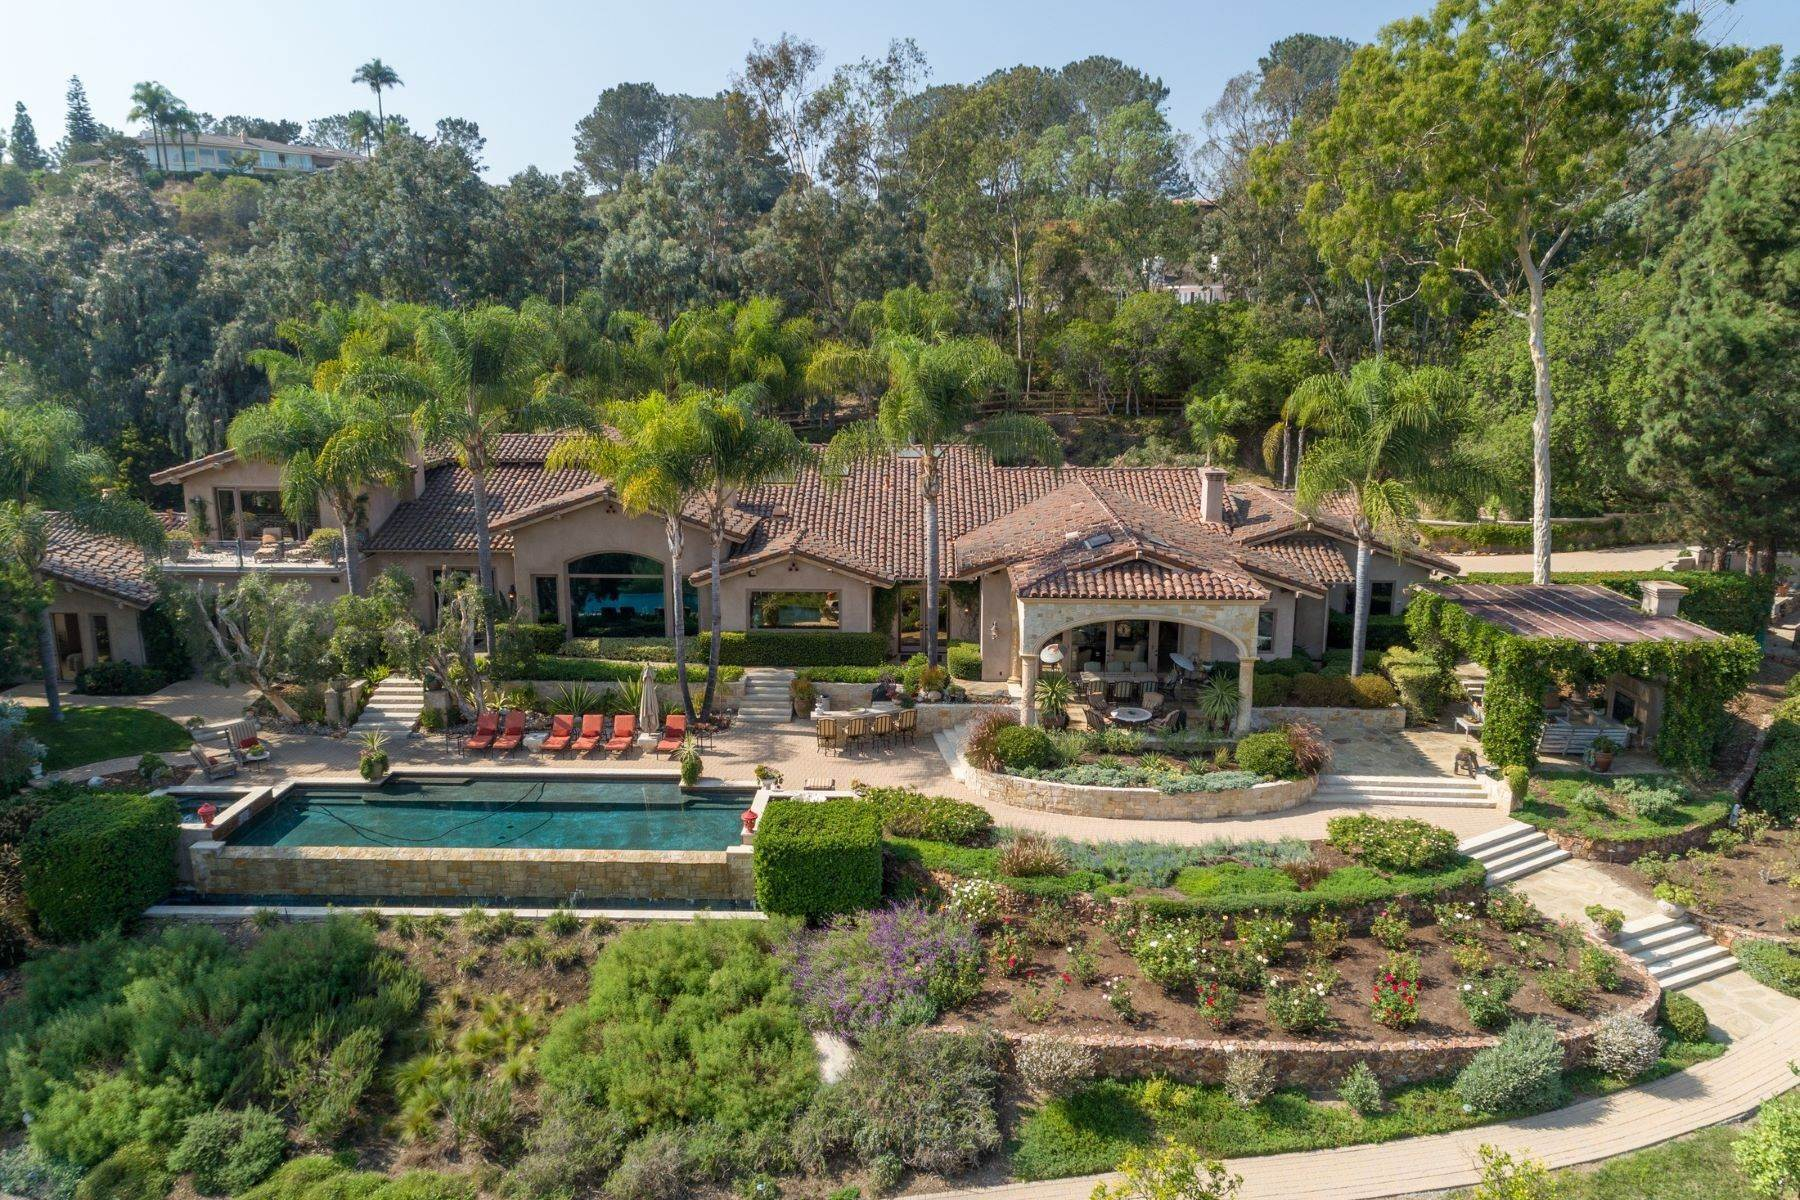 Single Family Homes for Active at 4724 El Aspecto, Rancho Santa Fe, CA 92091 4724 El Aspecto Rancho Santa Fe, California 92091 United States